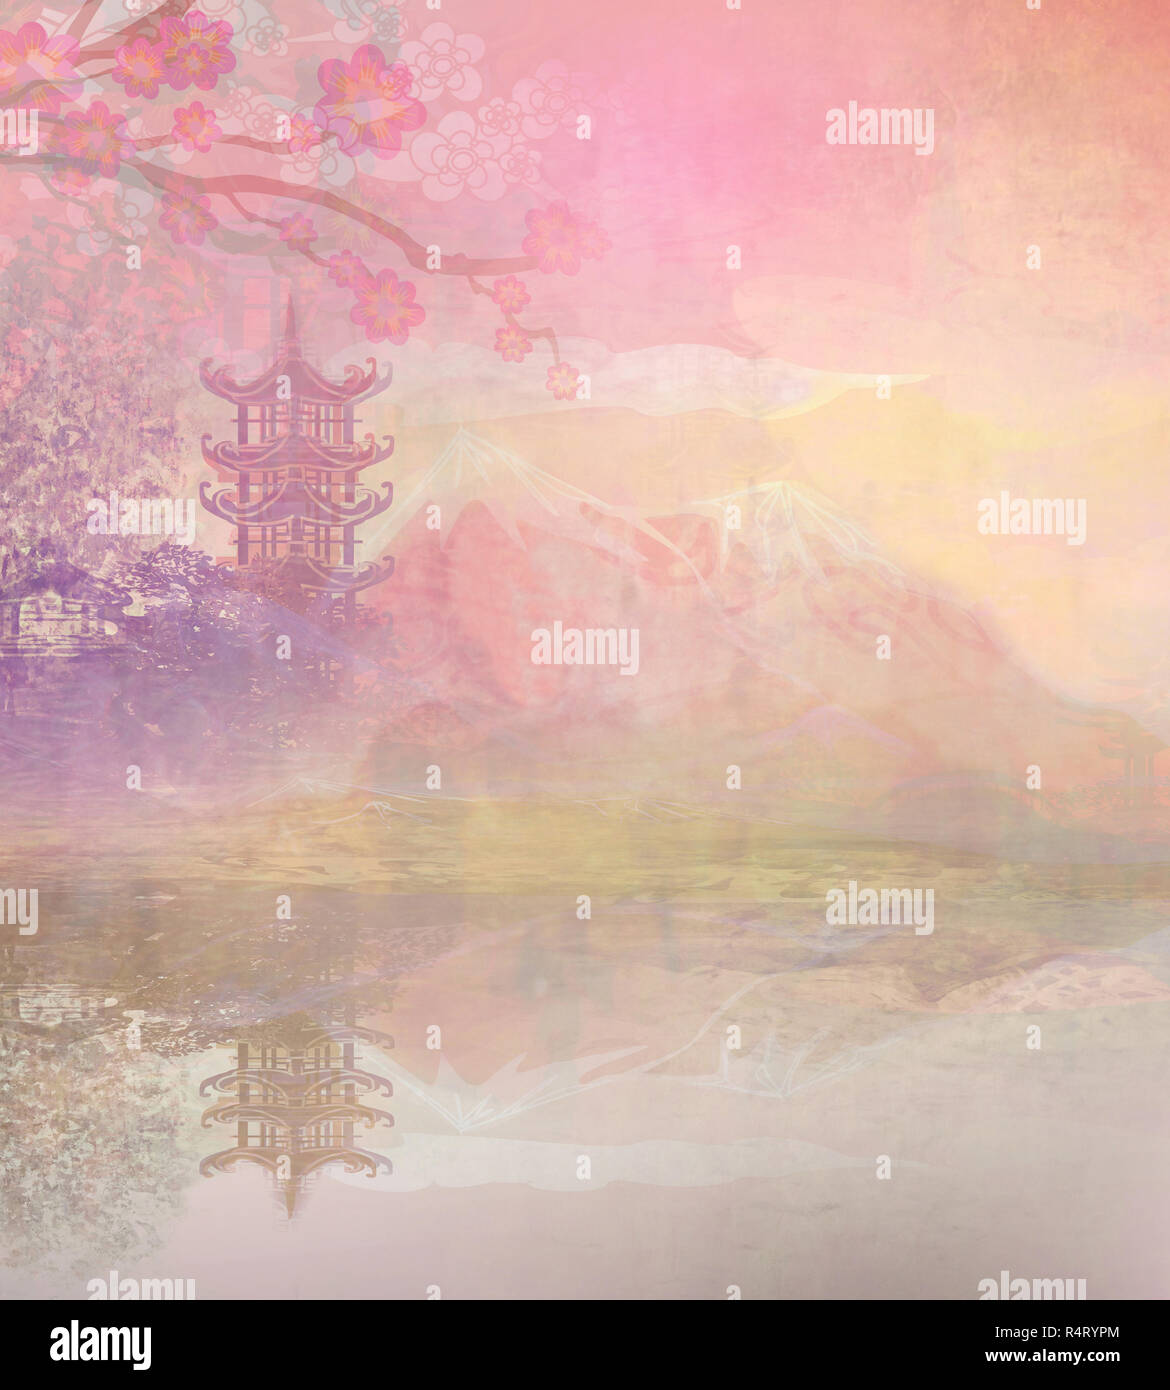 Abstract Asian Landscape Stock Photo 226720108 Alamy